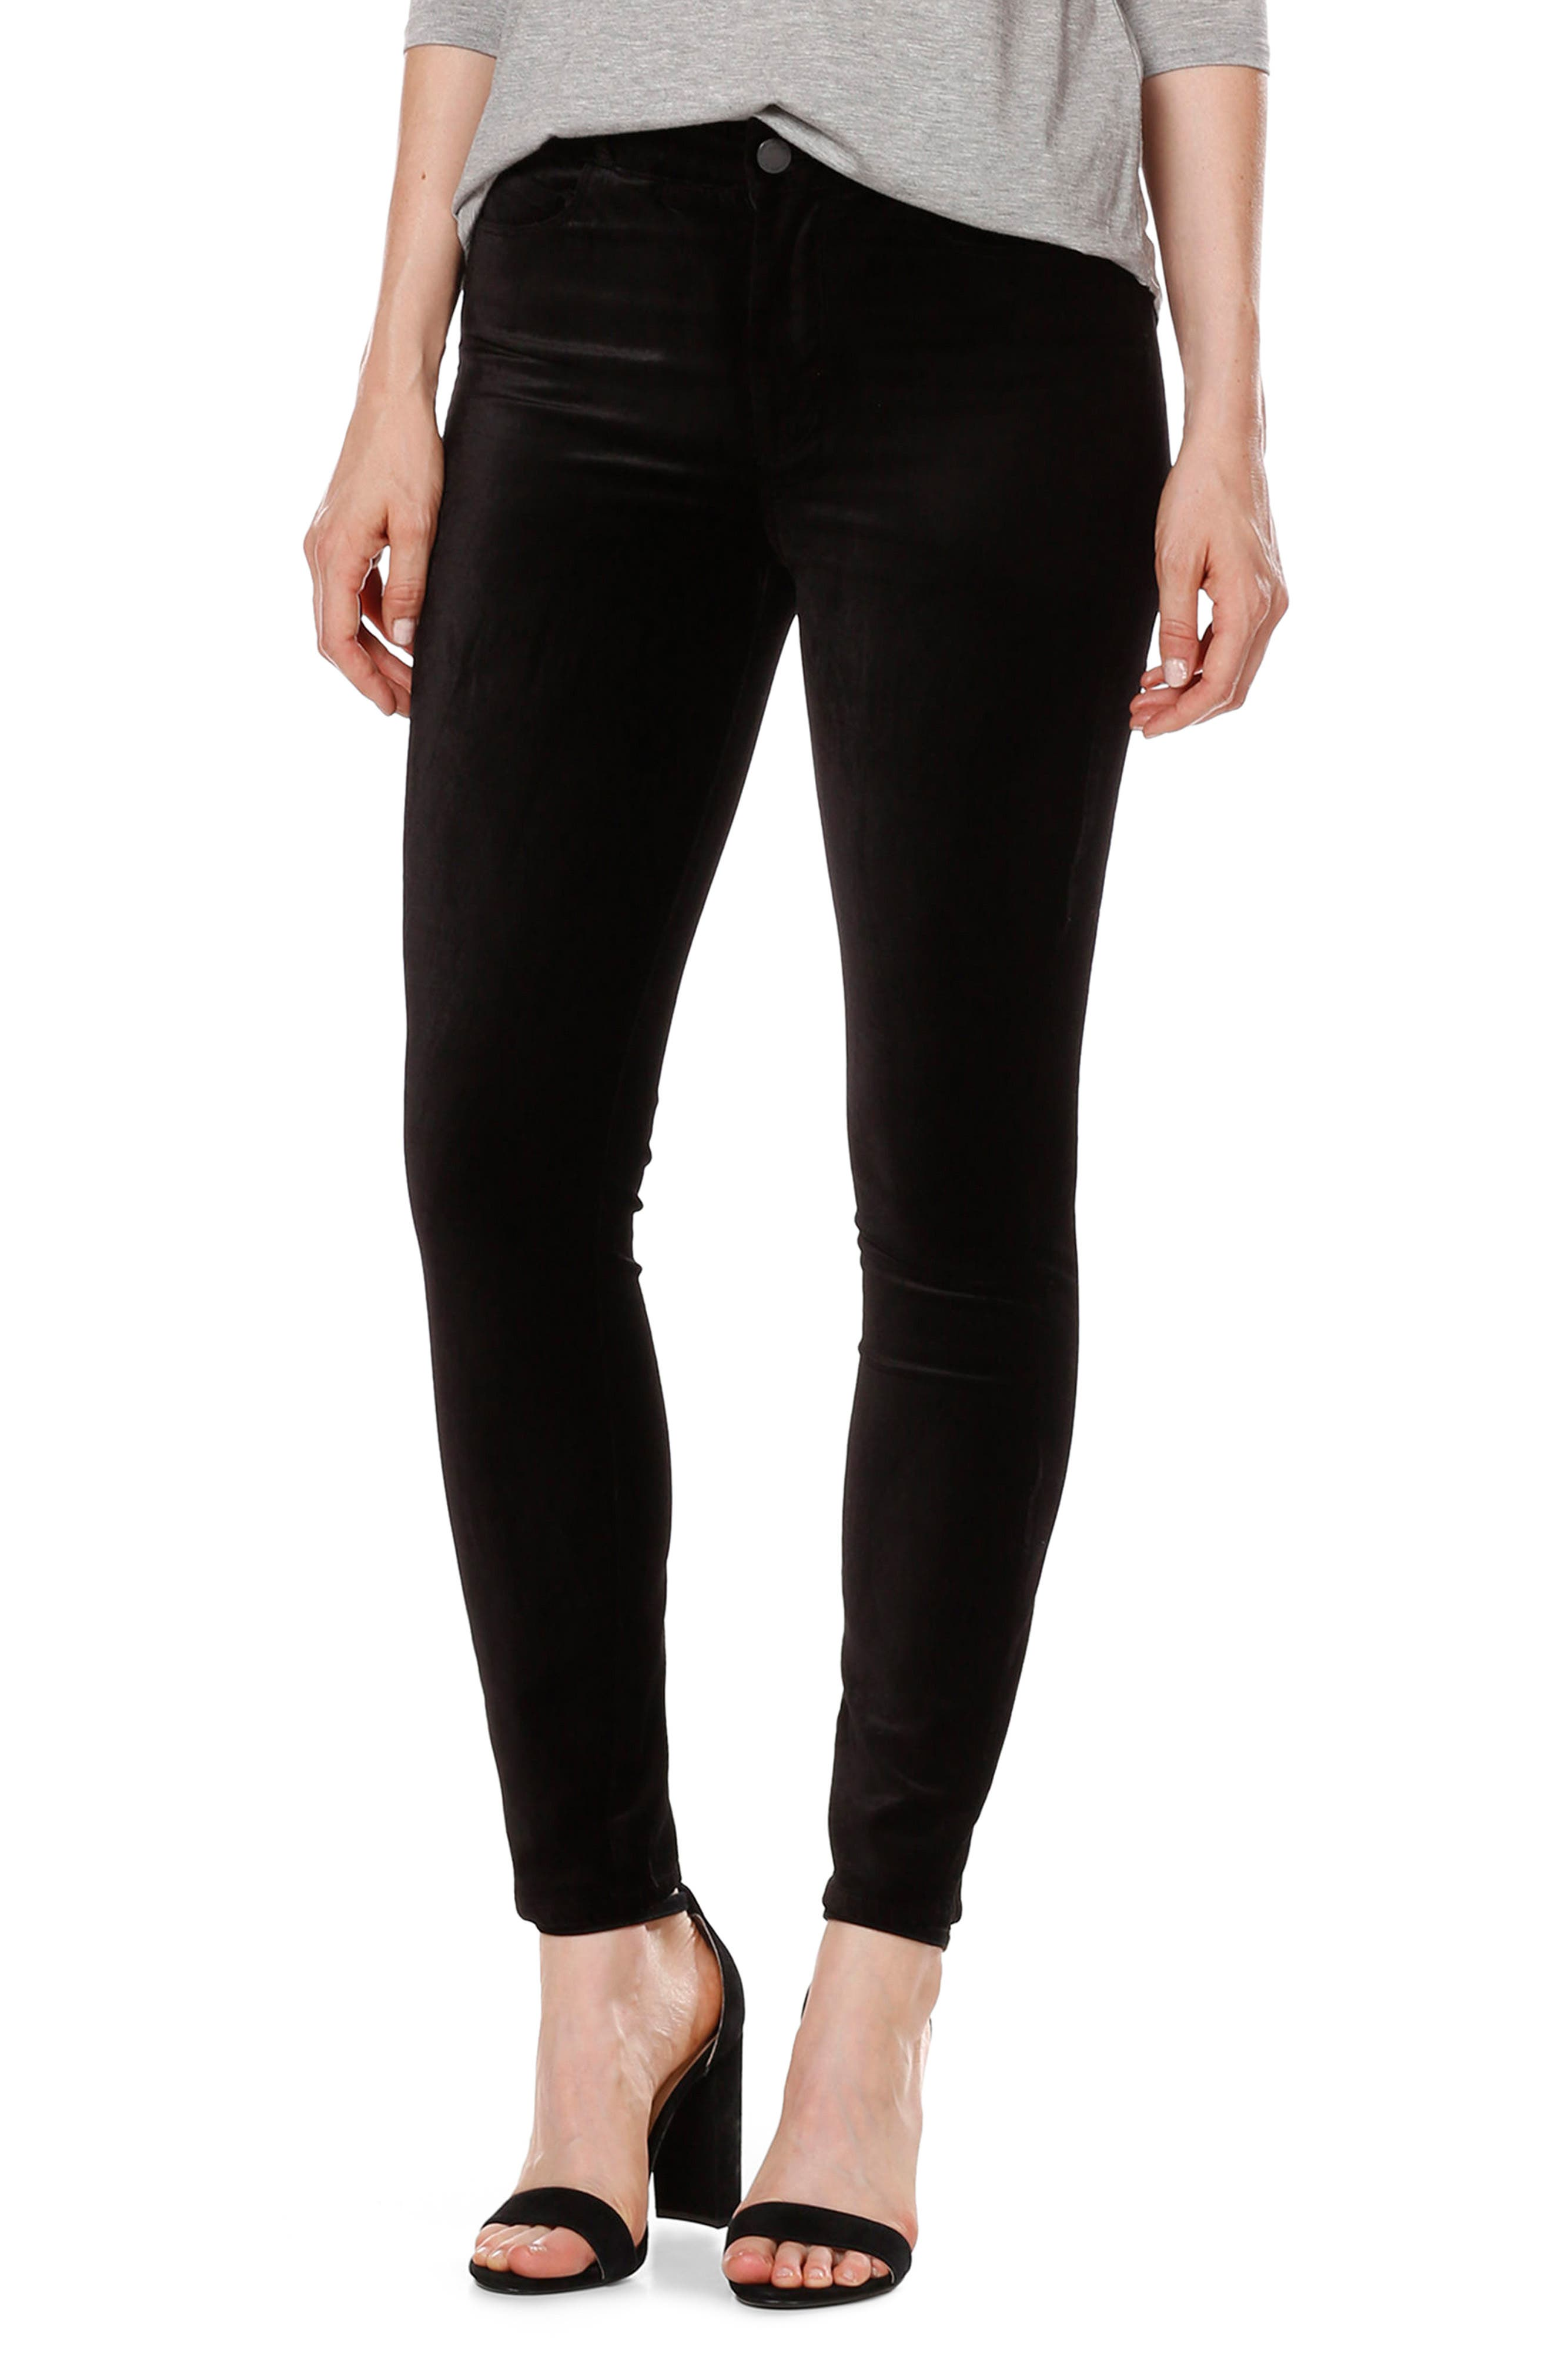 Hush black coated jeans